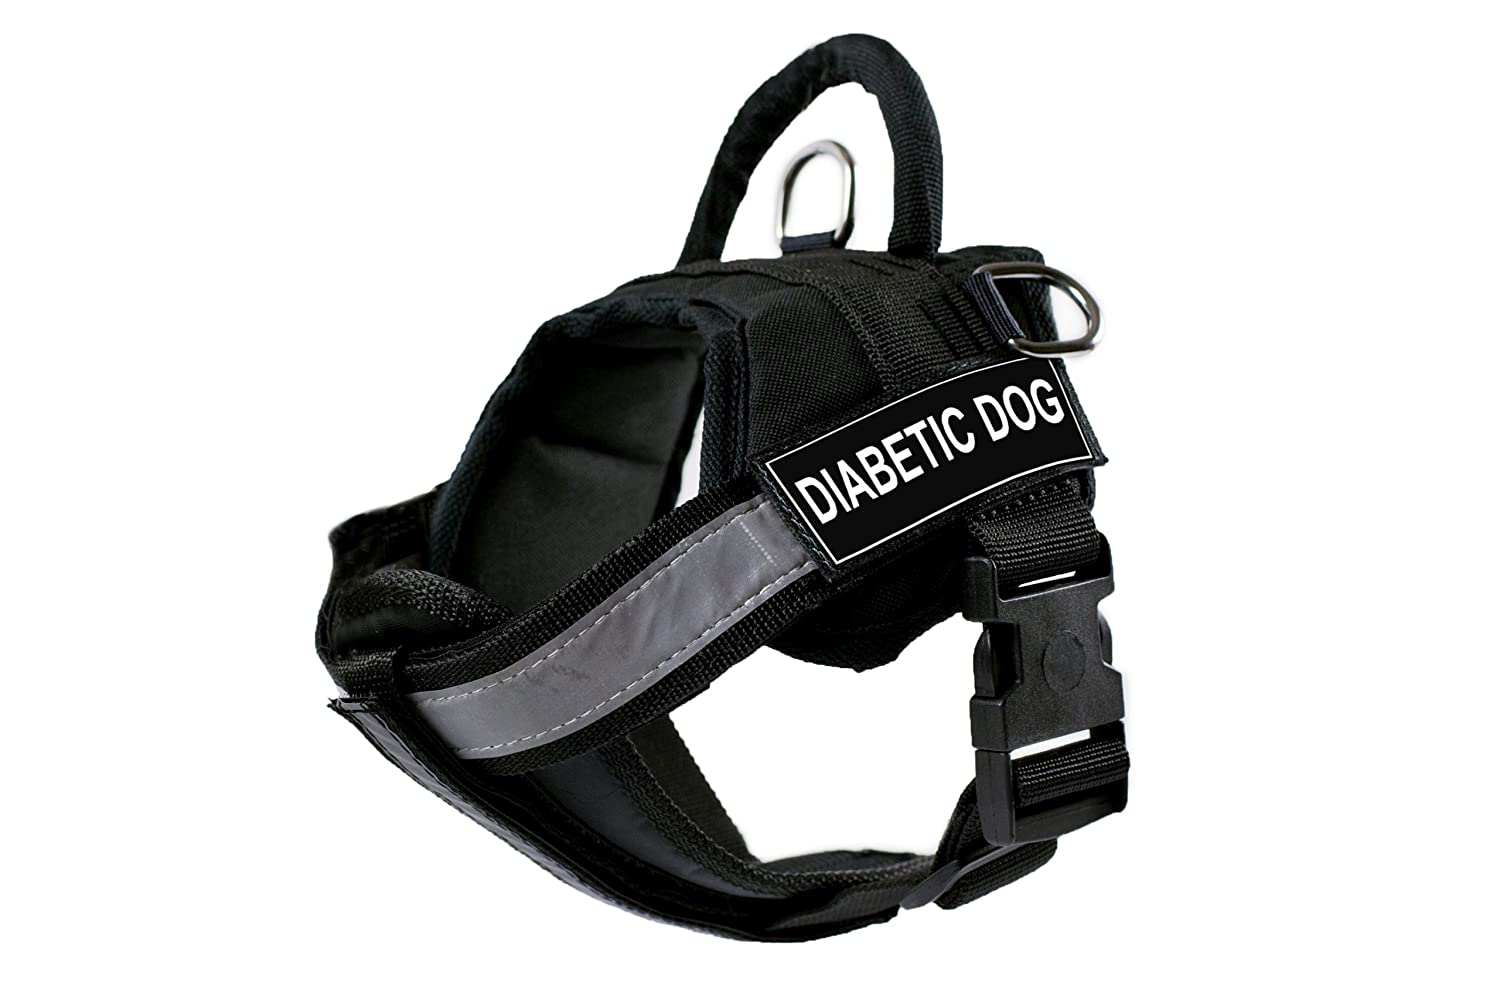 DT Works Harness with Padded Reflective Chest Straps, Diabetic Dog, Black, Small Fits Girth Size  25-Inch to 34-Inch